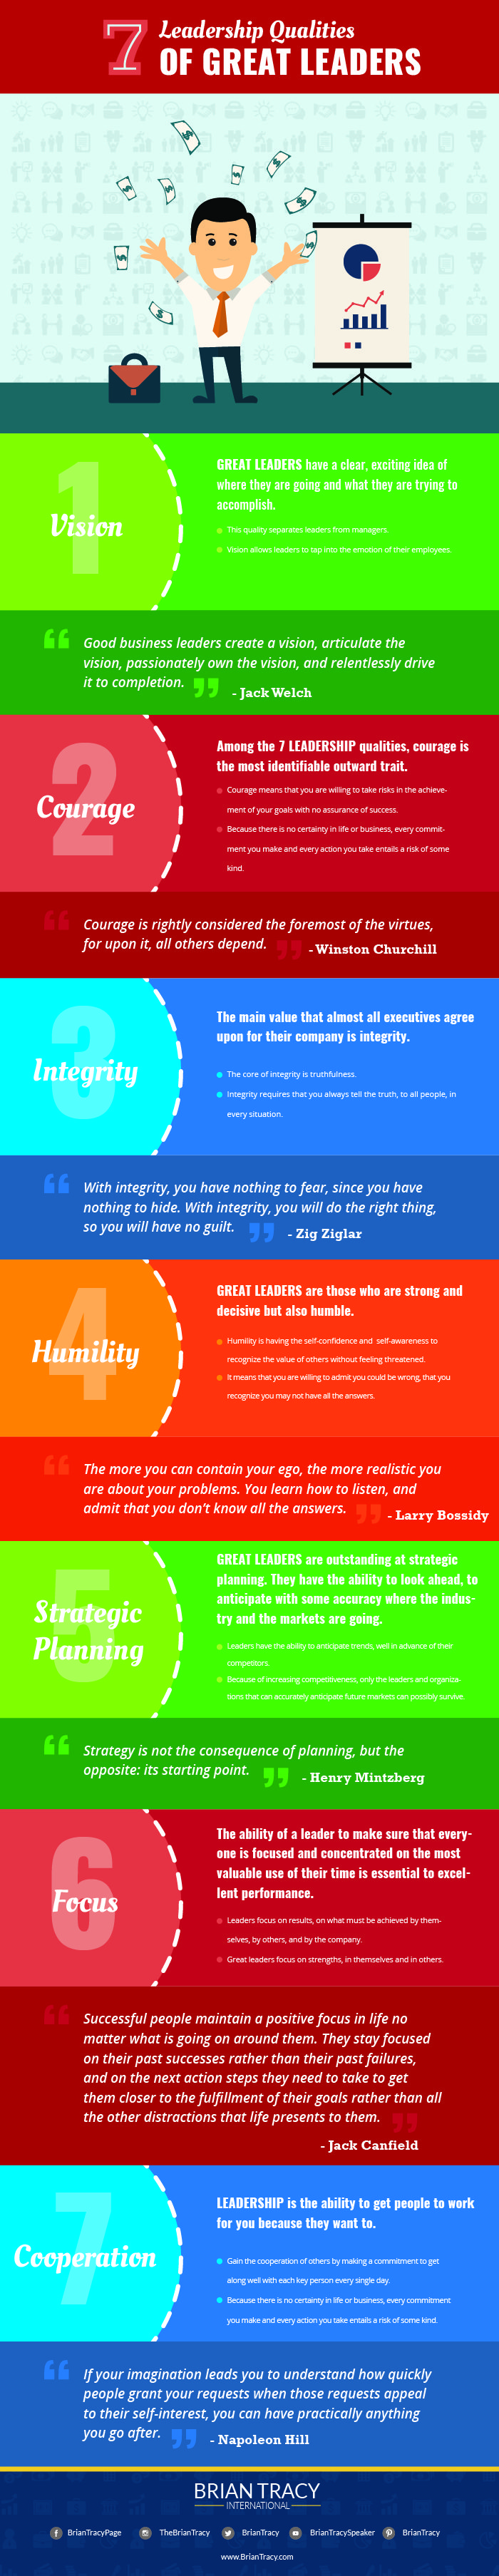 leadership qualities of great leaders, infographic by brian tracy